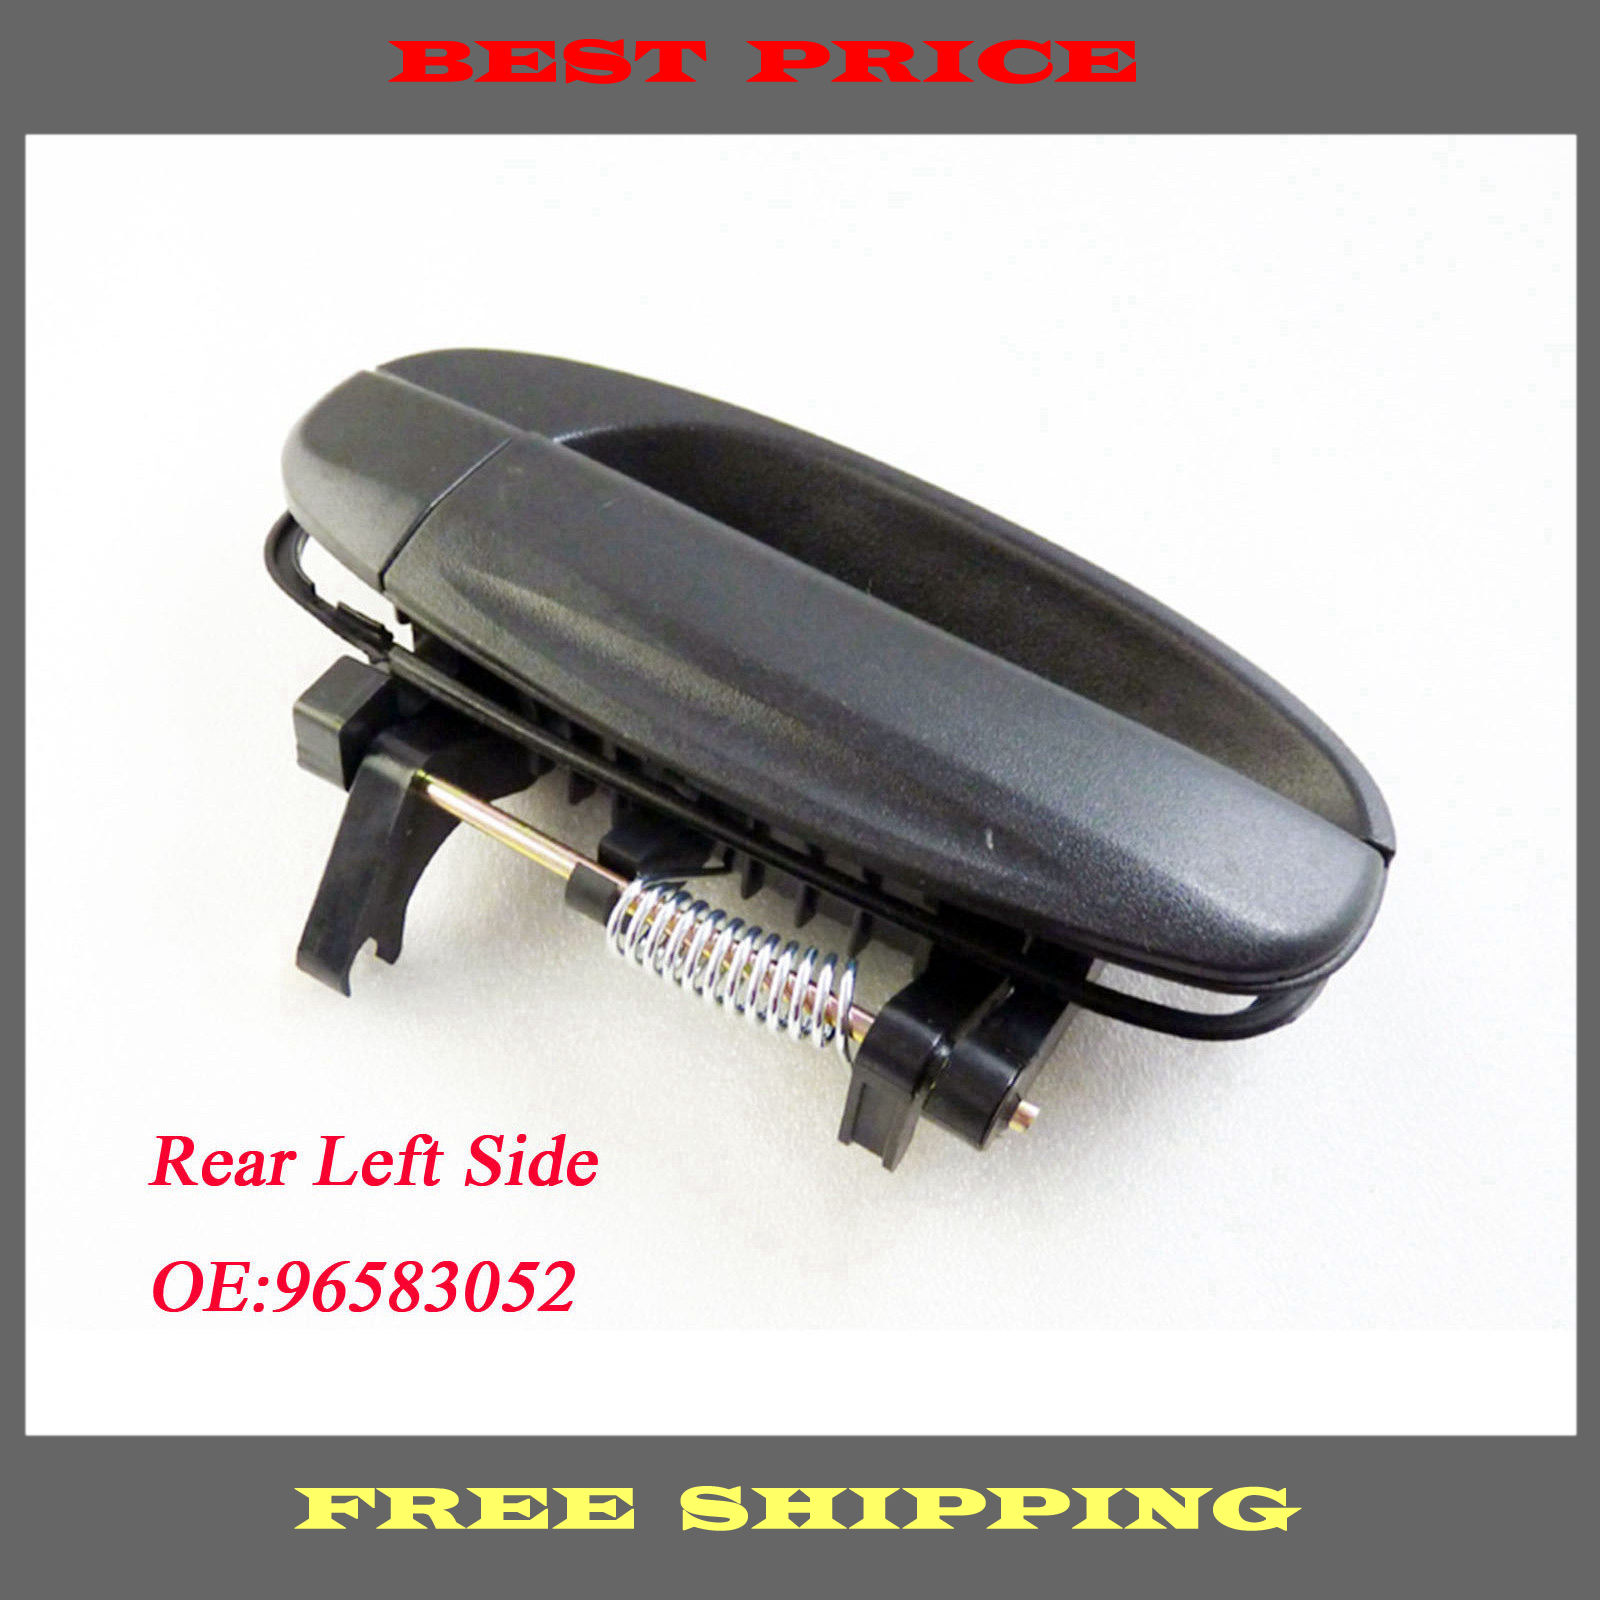 New Outside Door Handle Rear Left Drive Exterior Black For